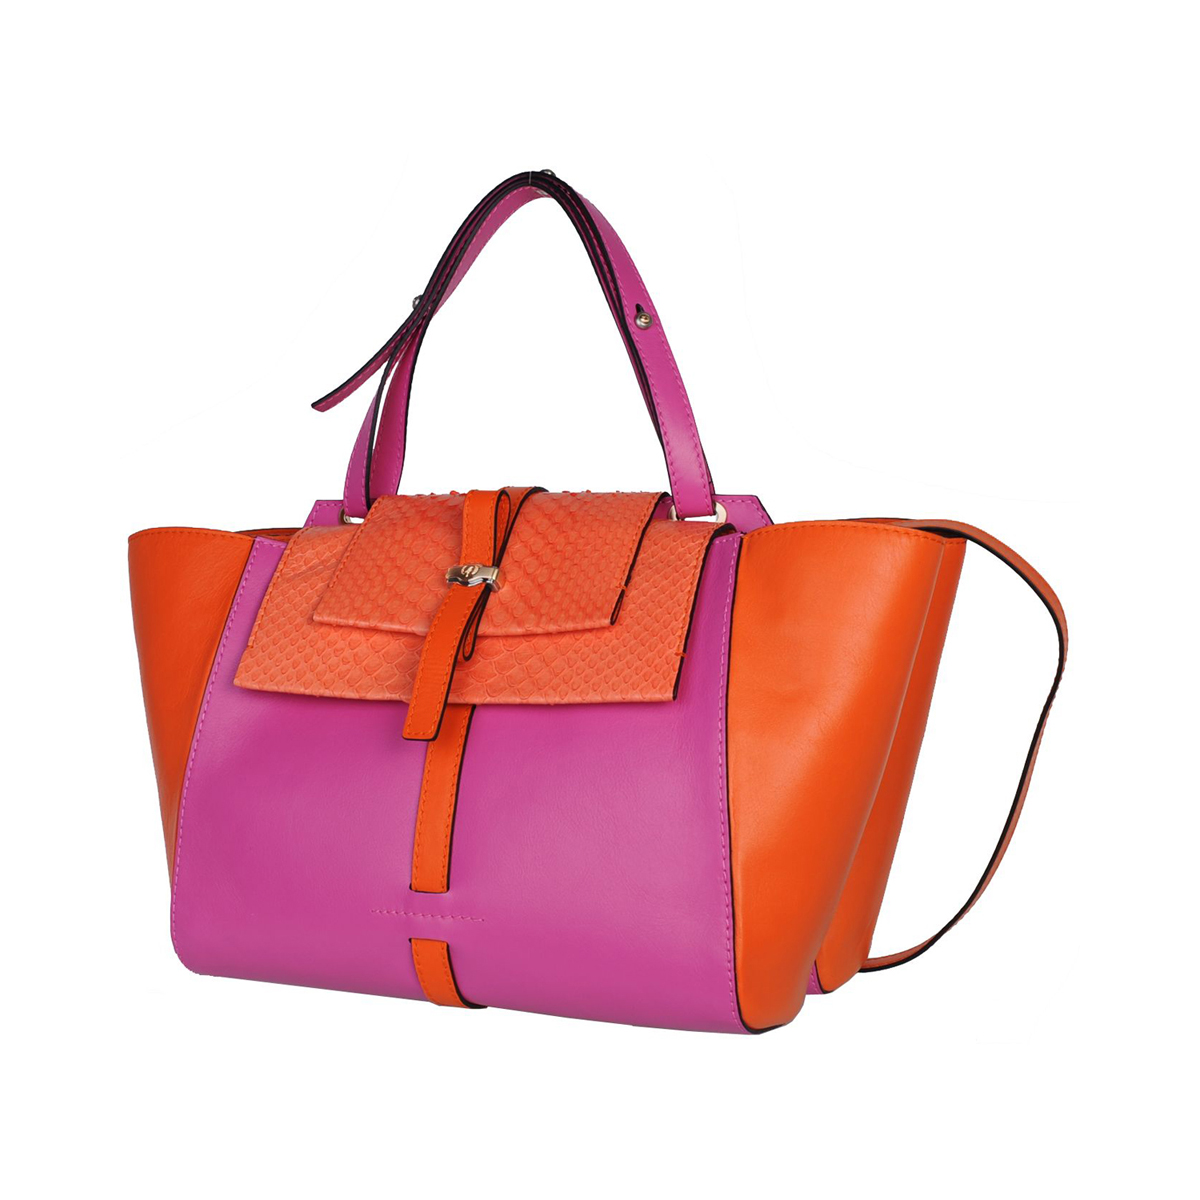 [SATCHEL] JULIA (REAL PYTHON & ITALIAN NAPPA / FUCHSIA) (MADE IN ITALY)